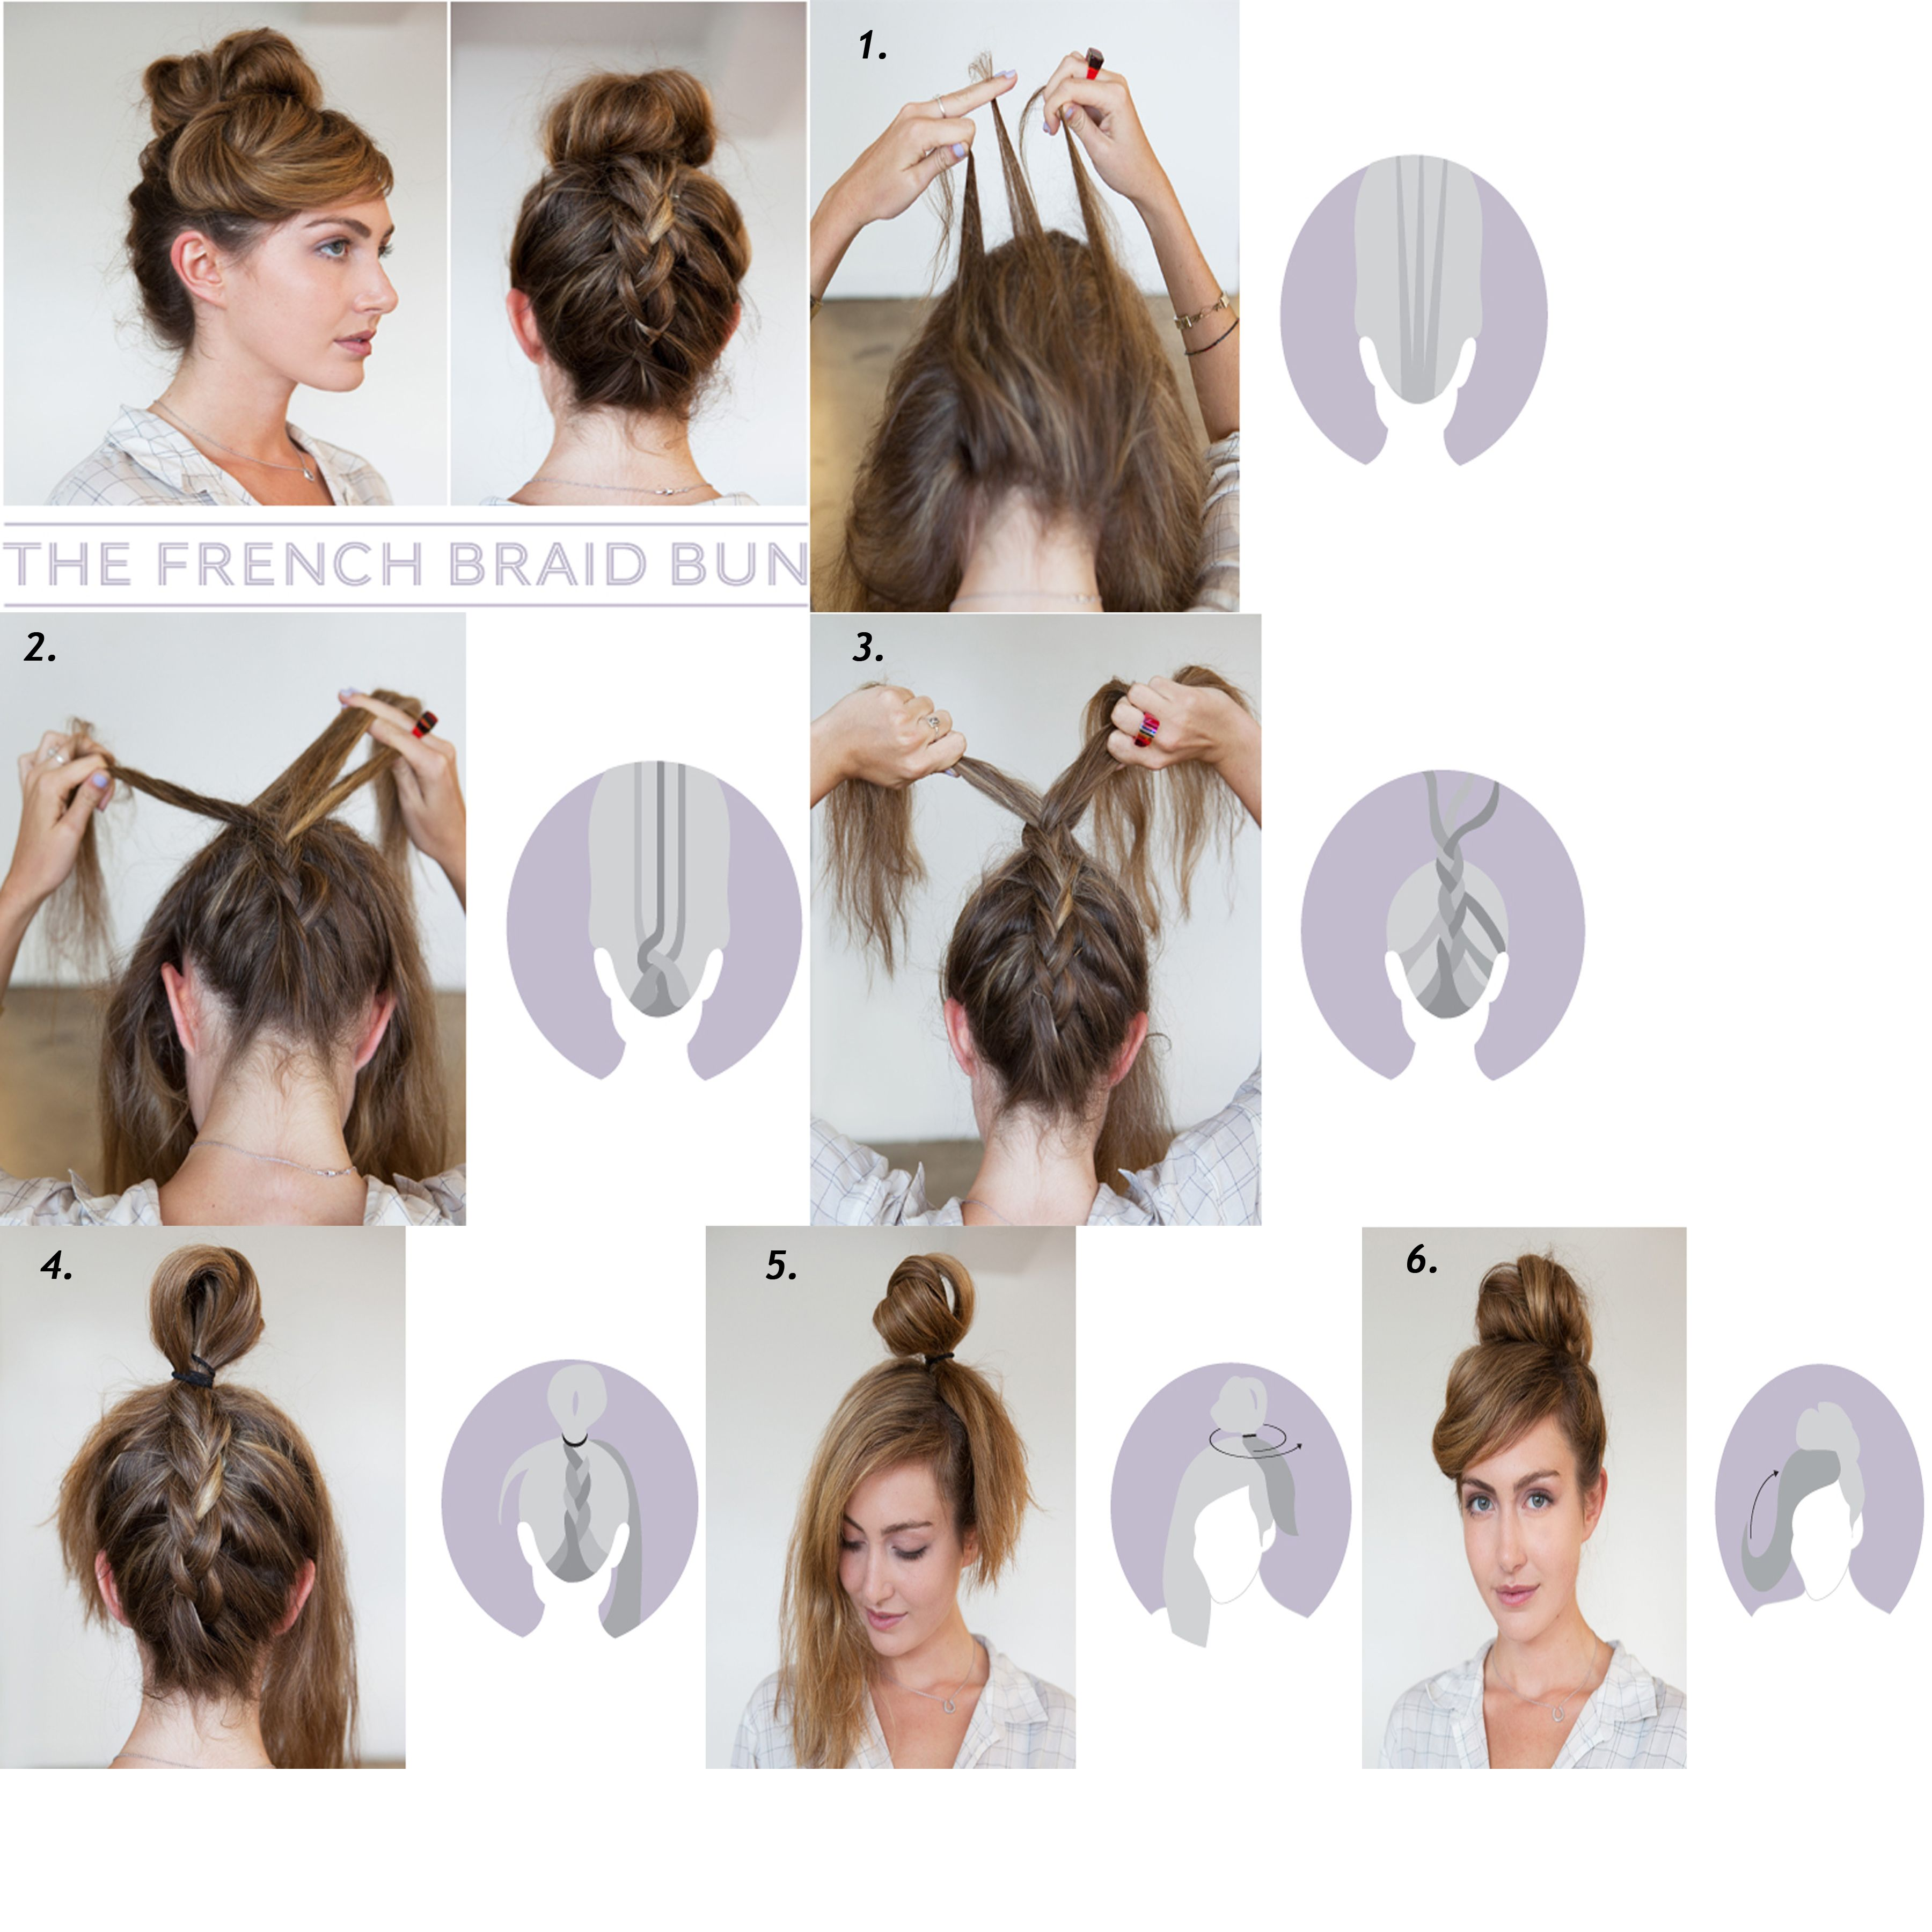 Super How To French Braid Your Own Hair Step By Step Images Guru Short Hairstyles Gunalazisus